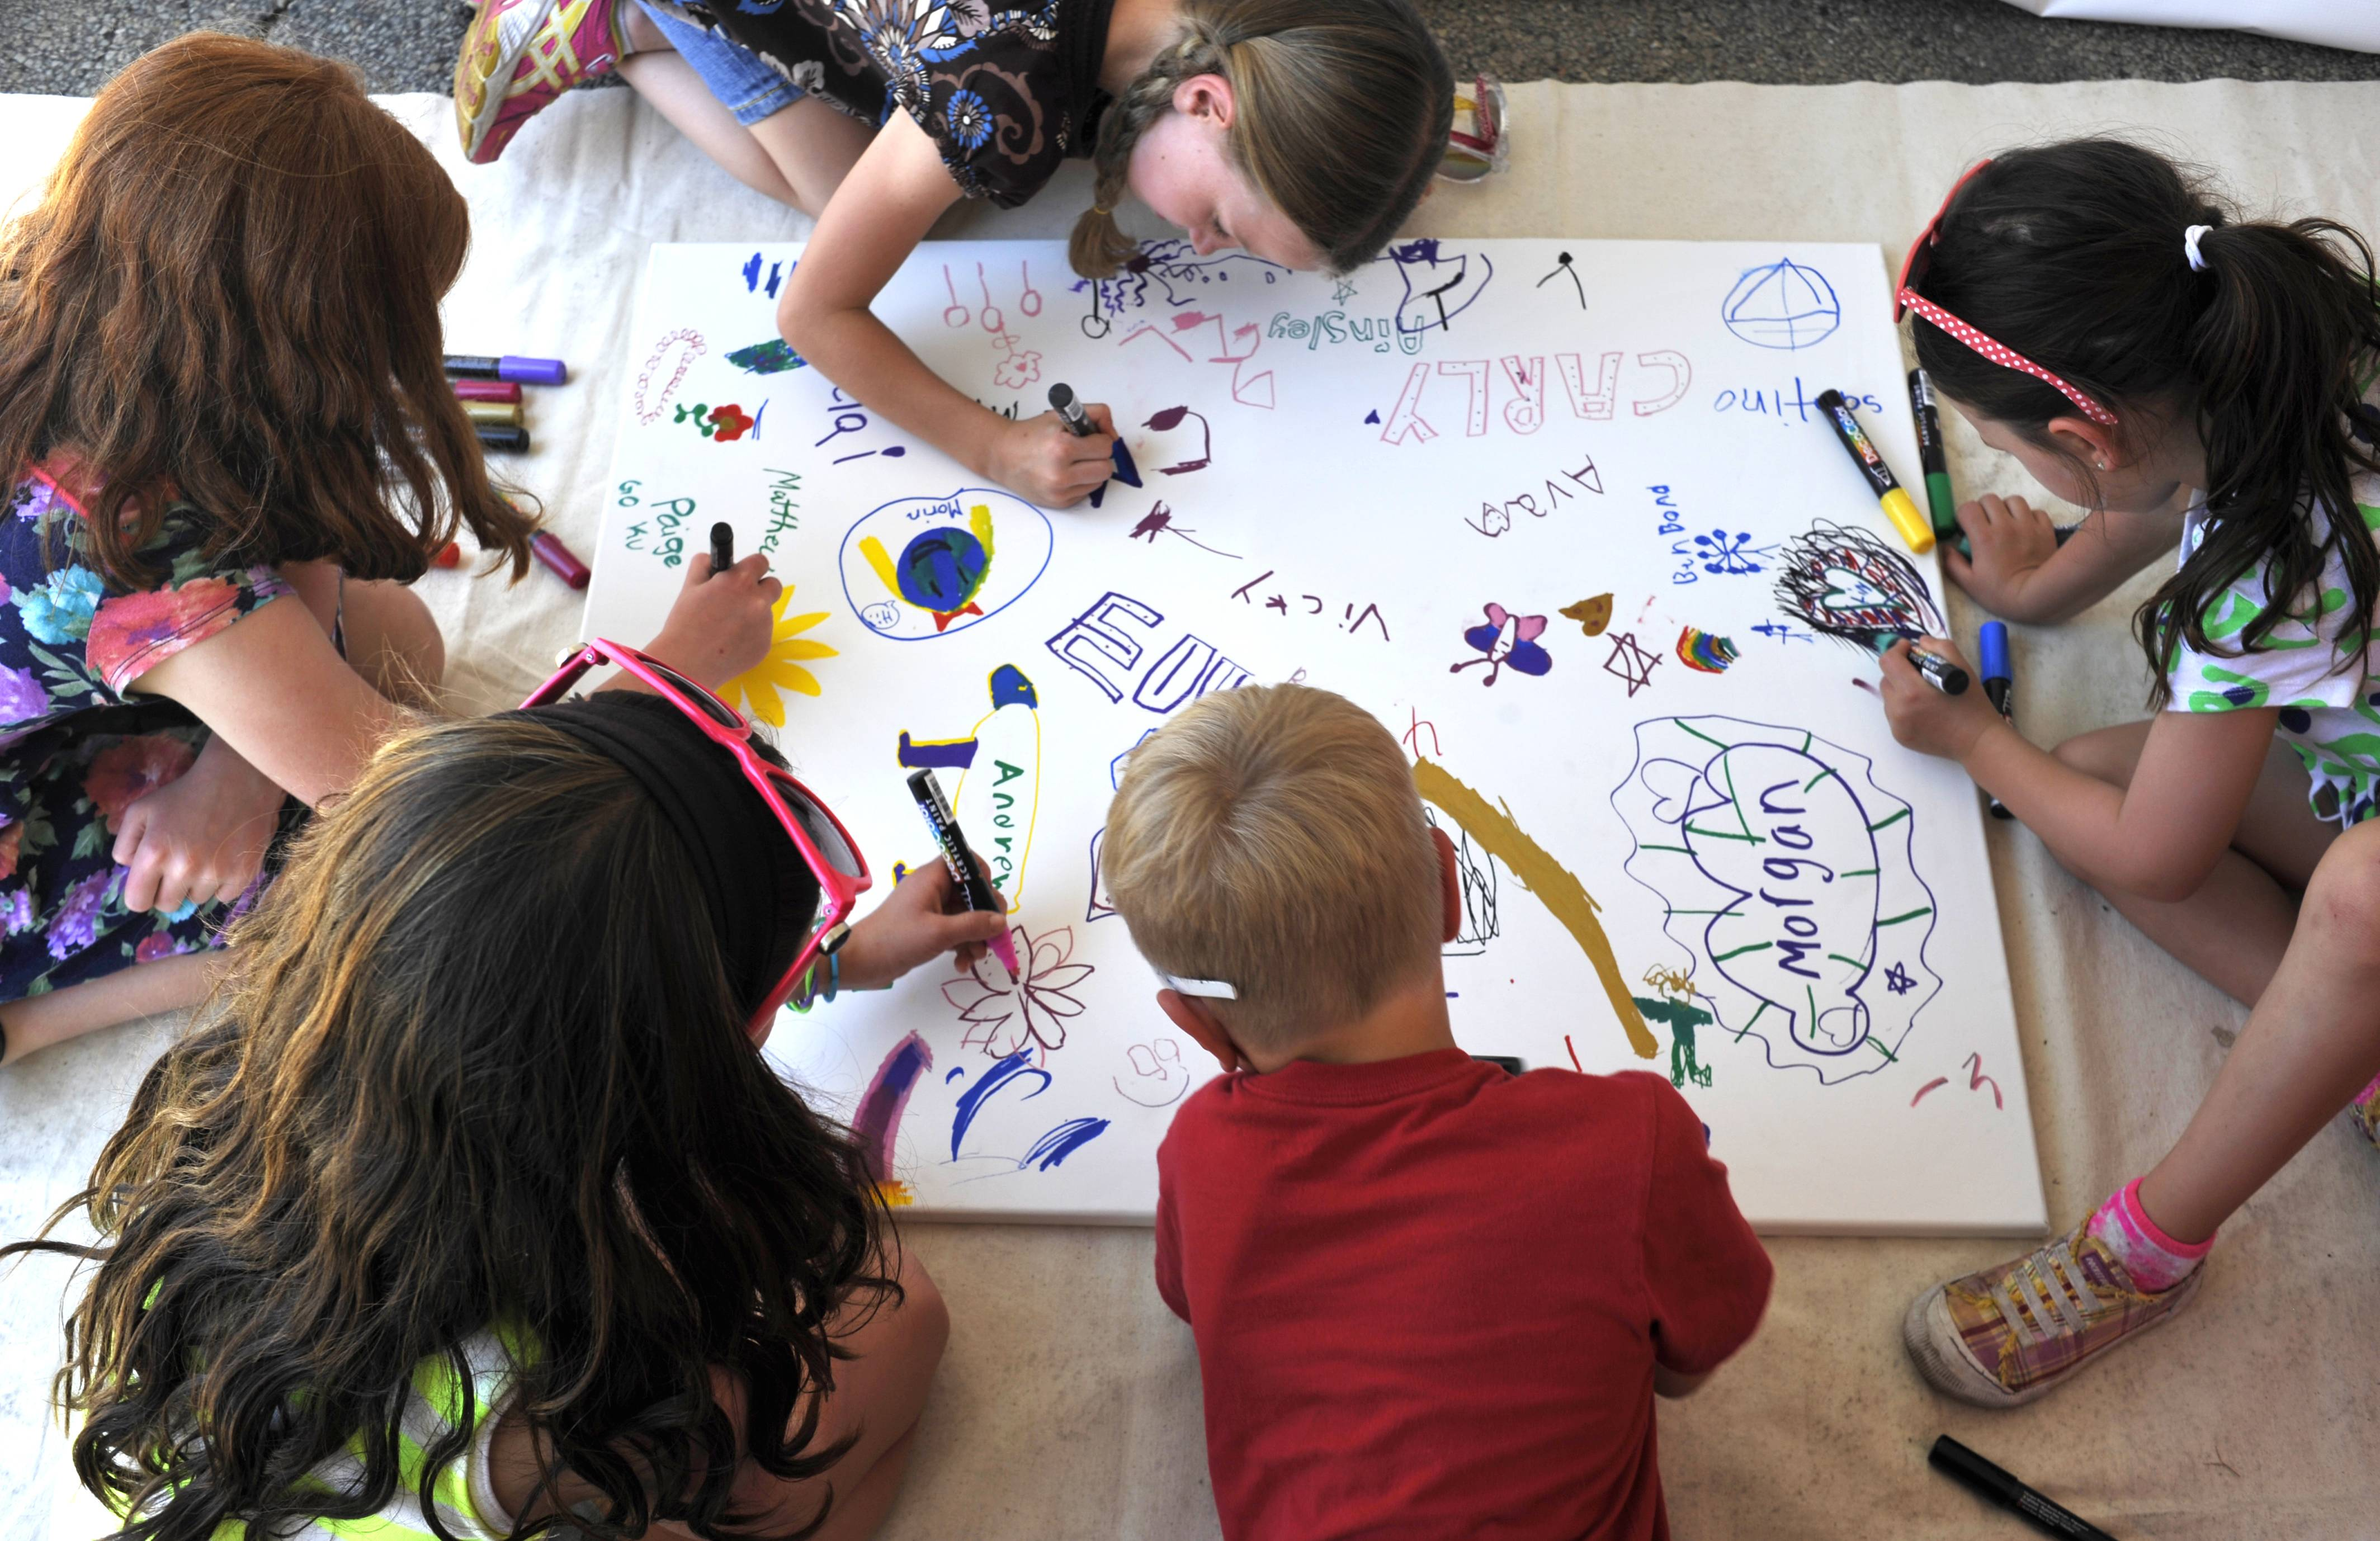 Sara House, 6, Molly Denz, 9, Ella Ruff, 9, Josh Denz, 7 and Lily Ruff, 6, (clockwise from far left) all of St. Charles, create drawings together at the St. Charles Fine Arts Festival on Sunday in downtown St. Charles.